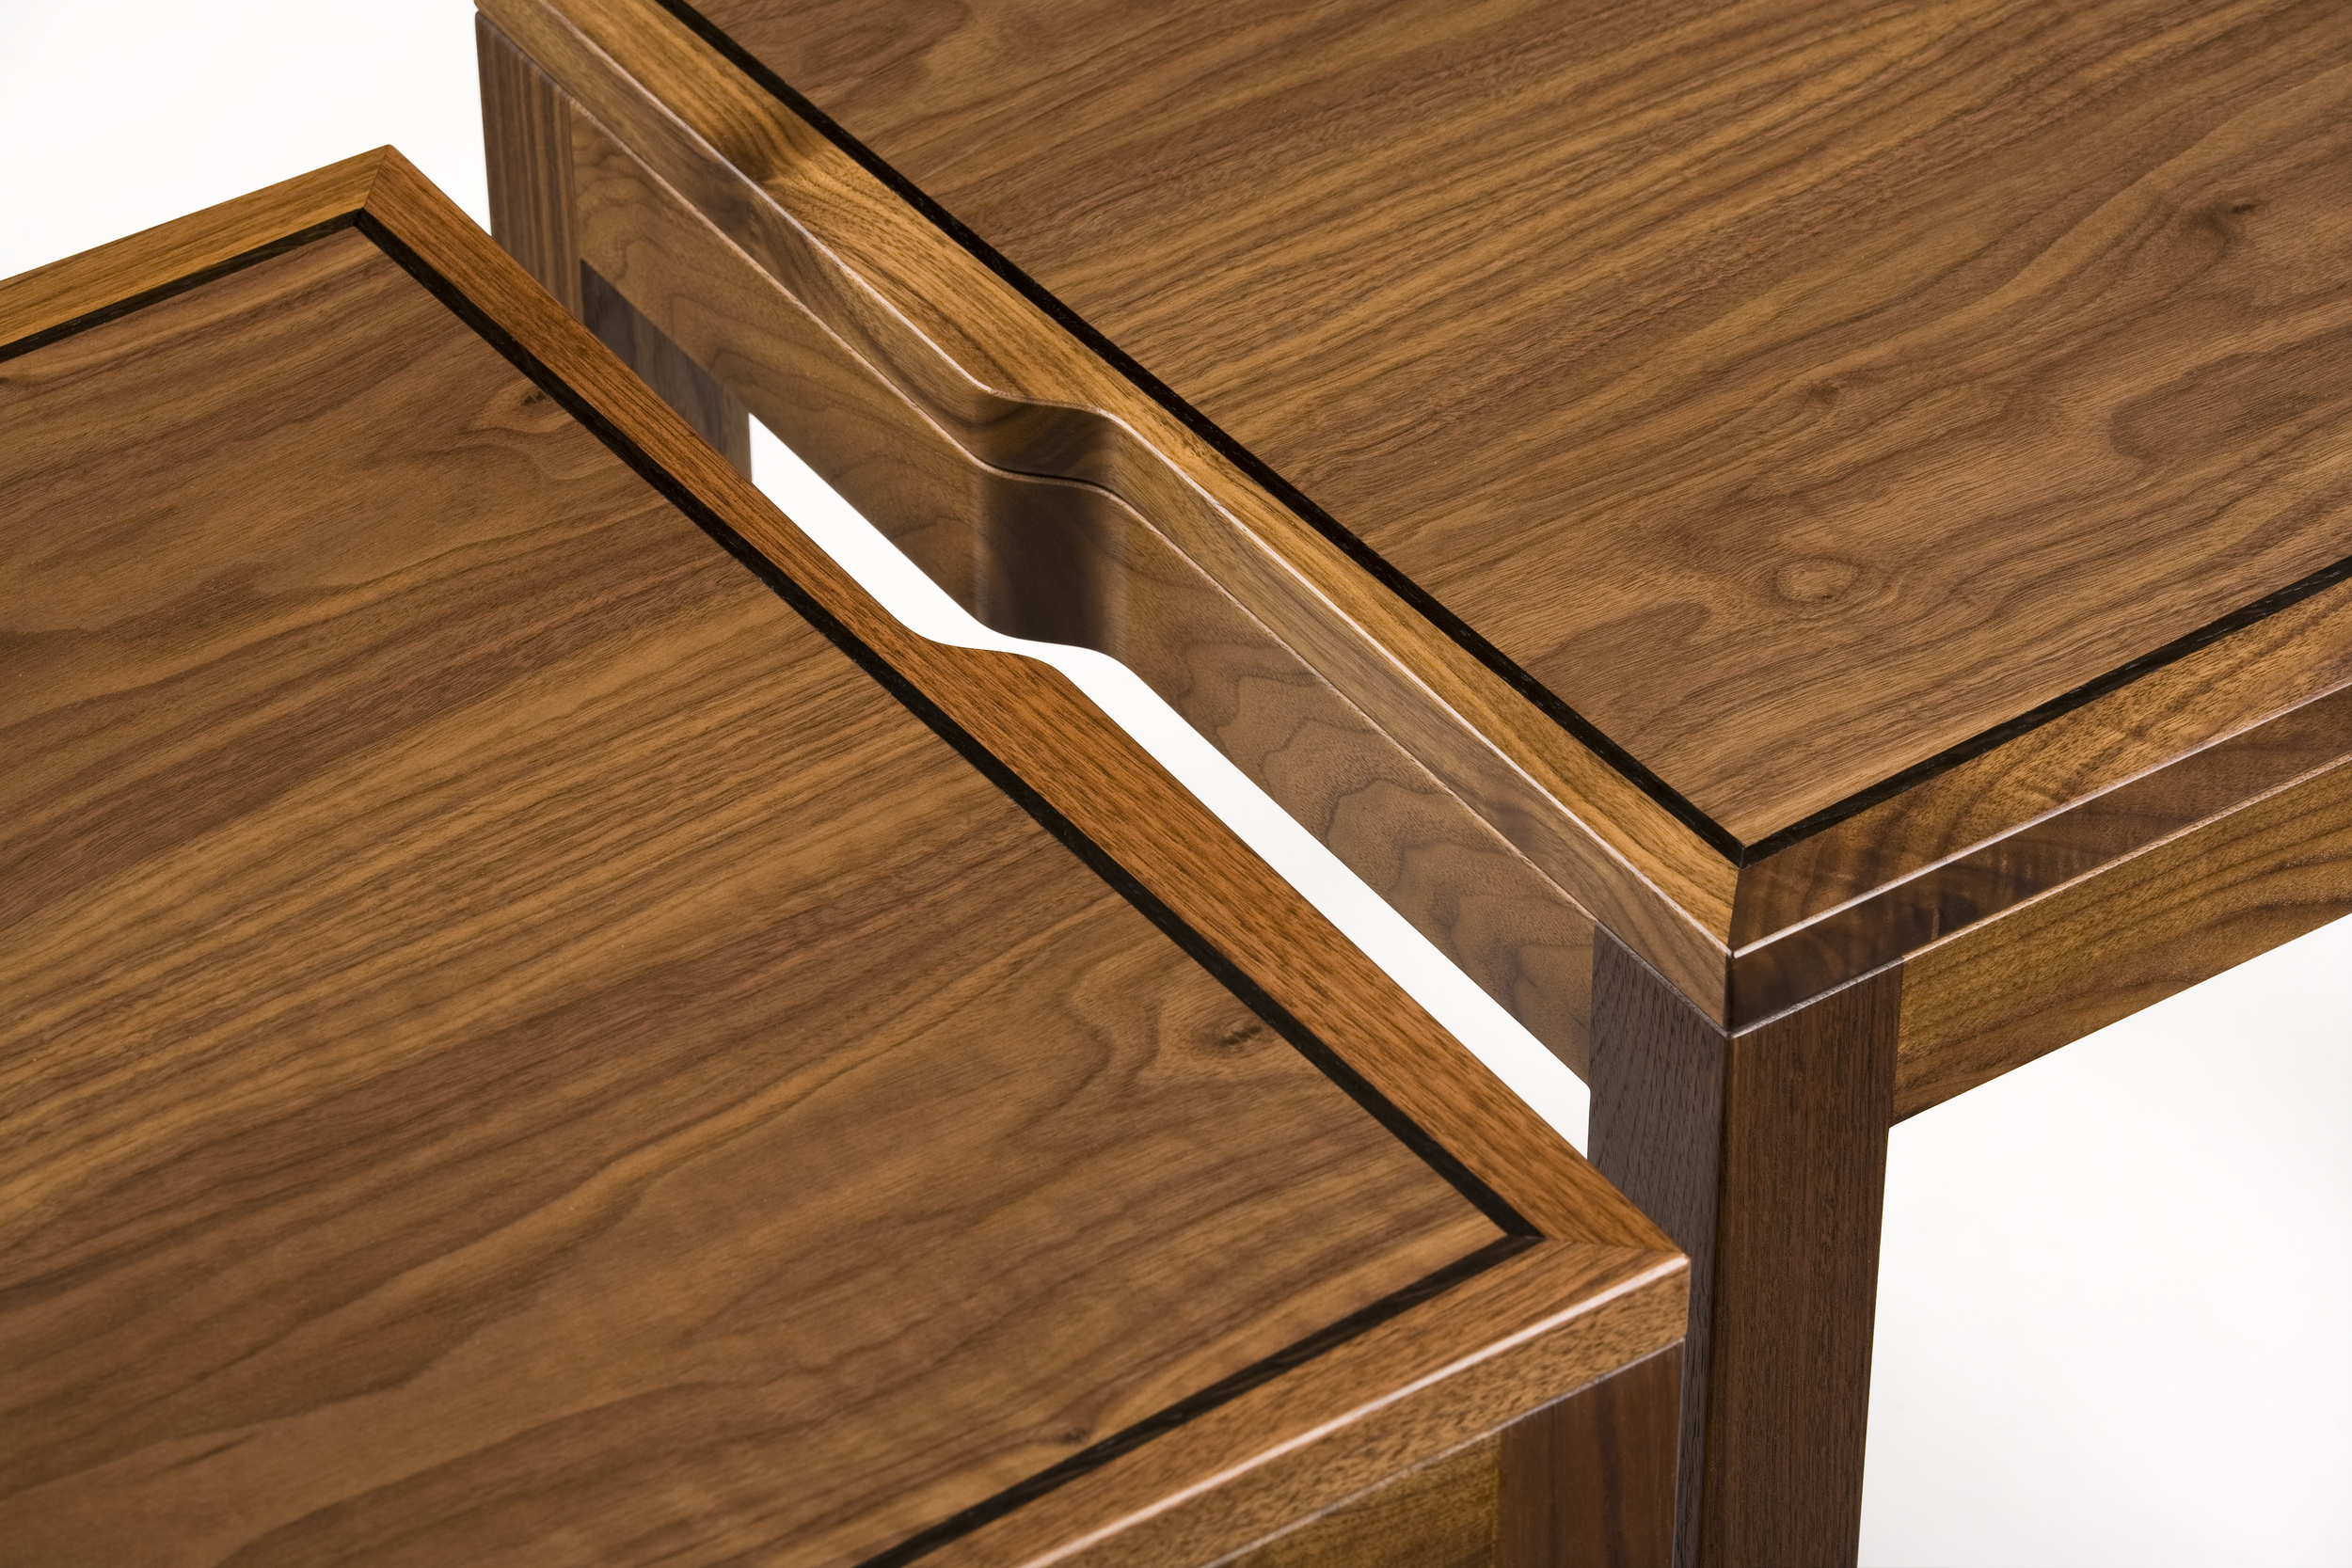 Coffee Table detail.